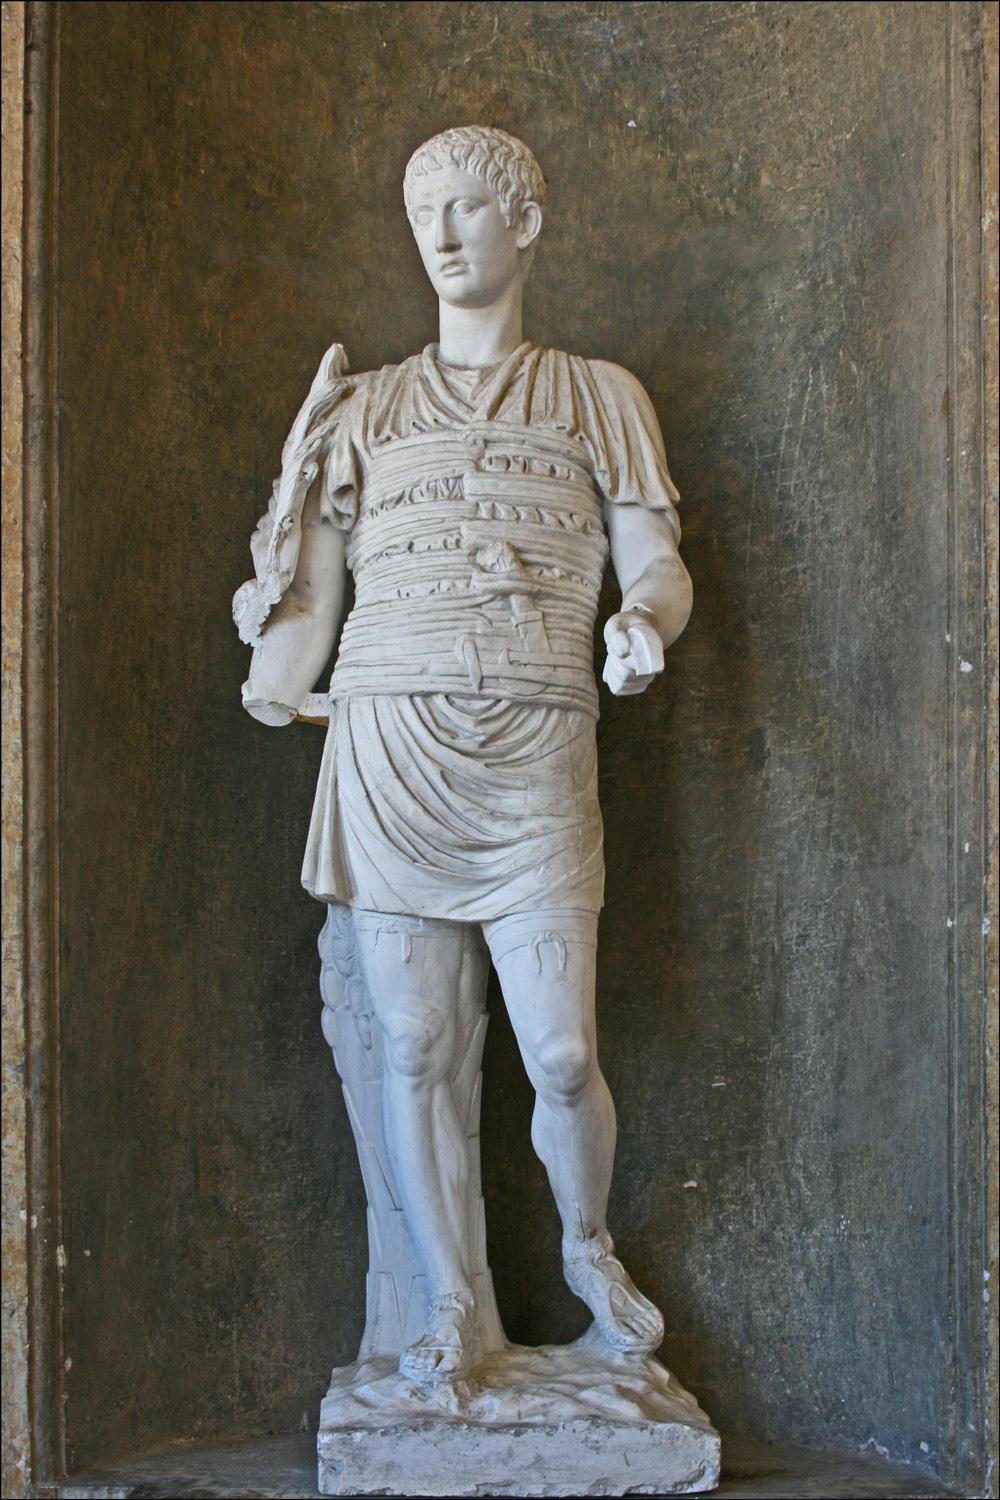 Roman Statue in the Loggia of Villa Medici